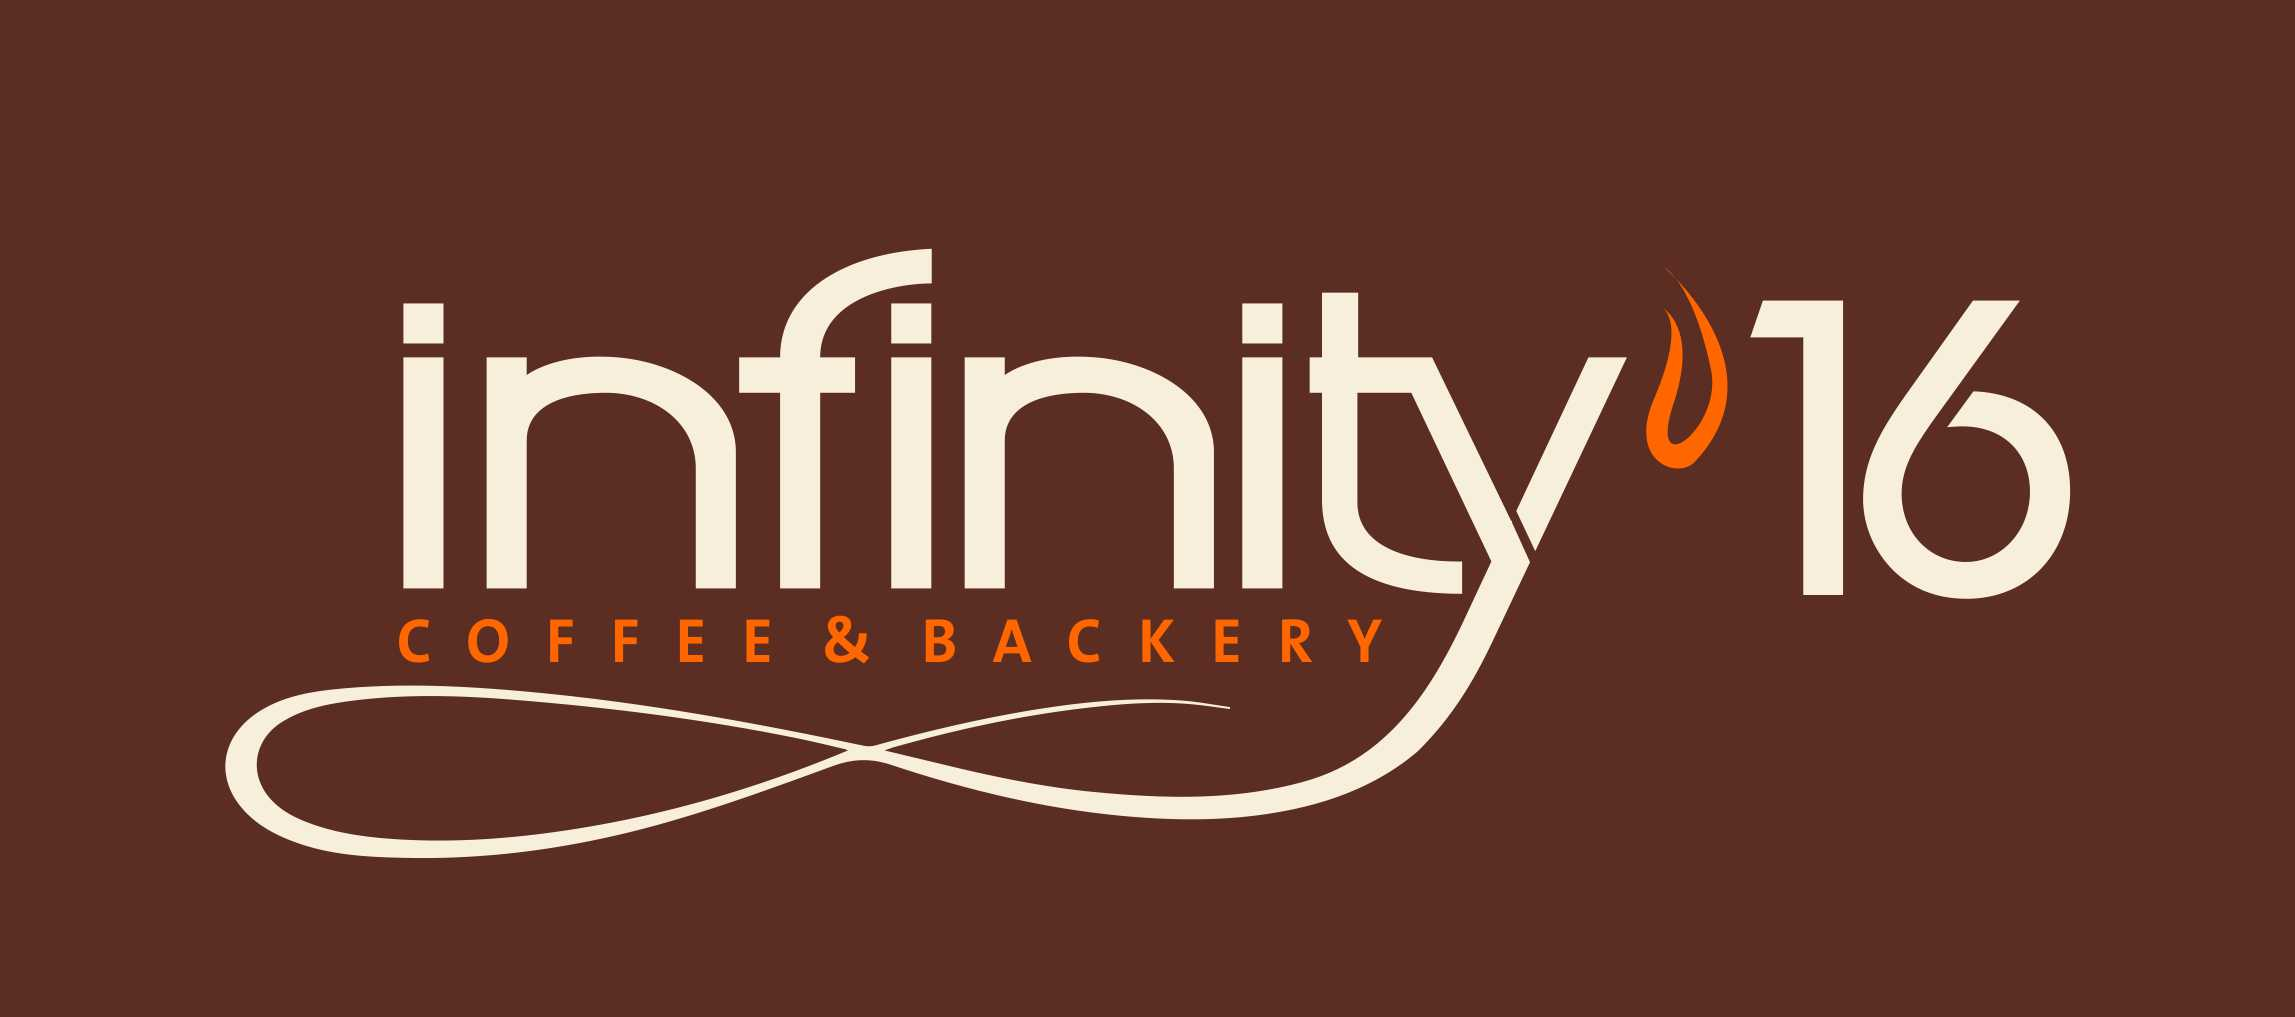 Infinity '16 Coffee & Bakery